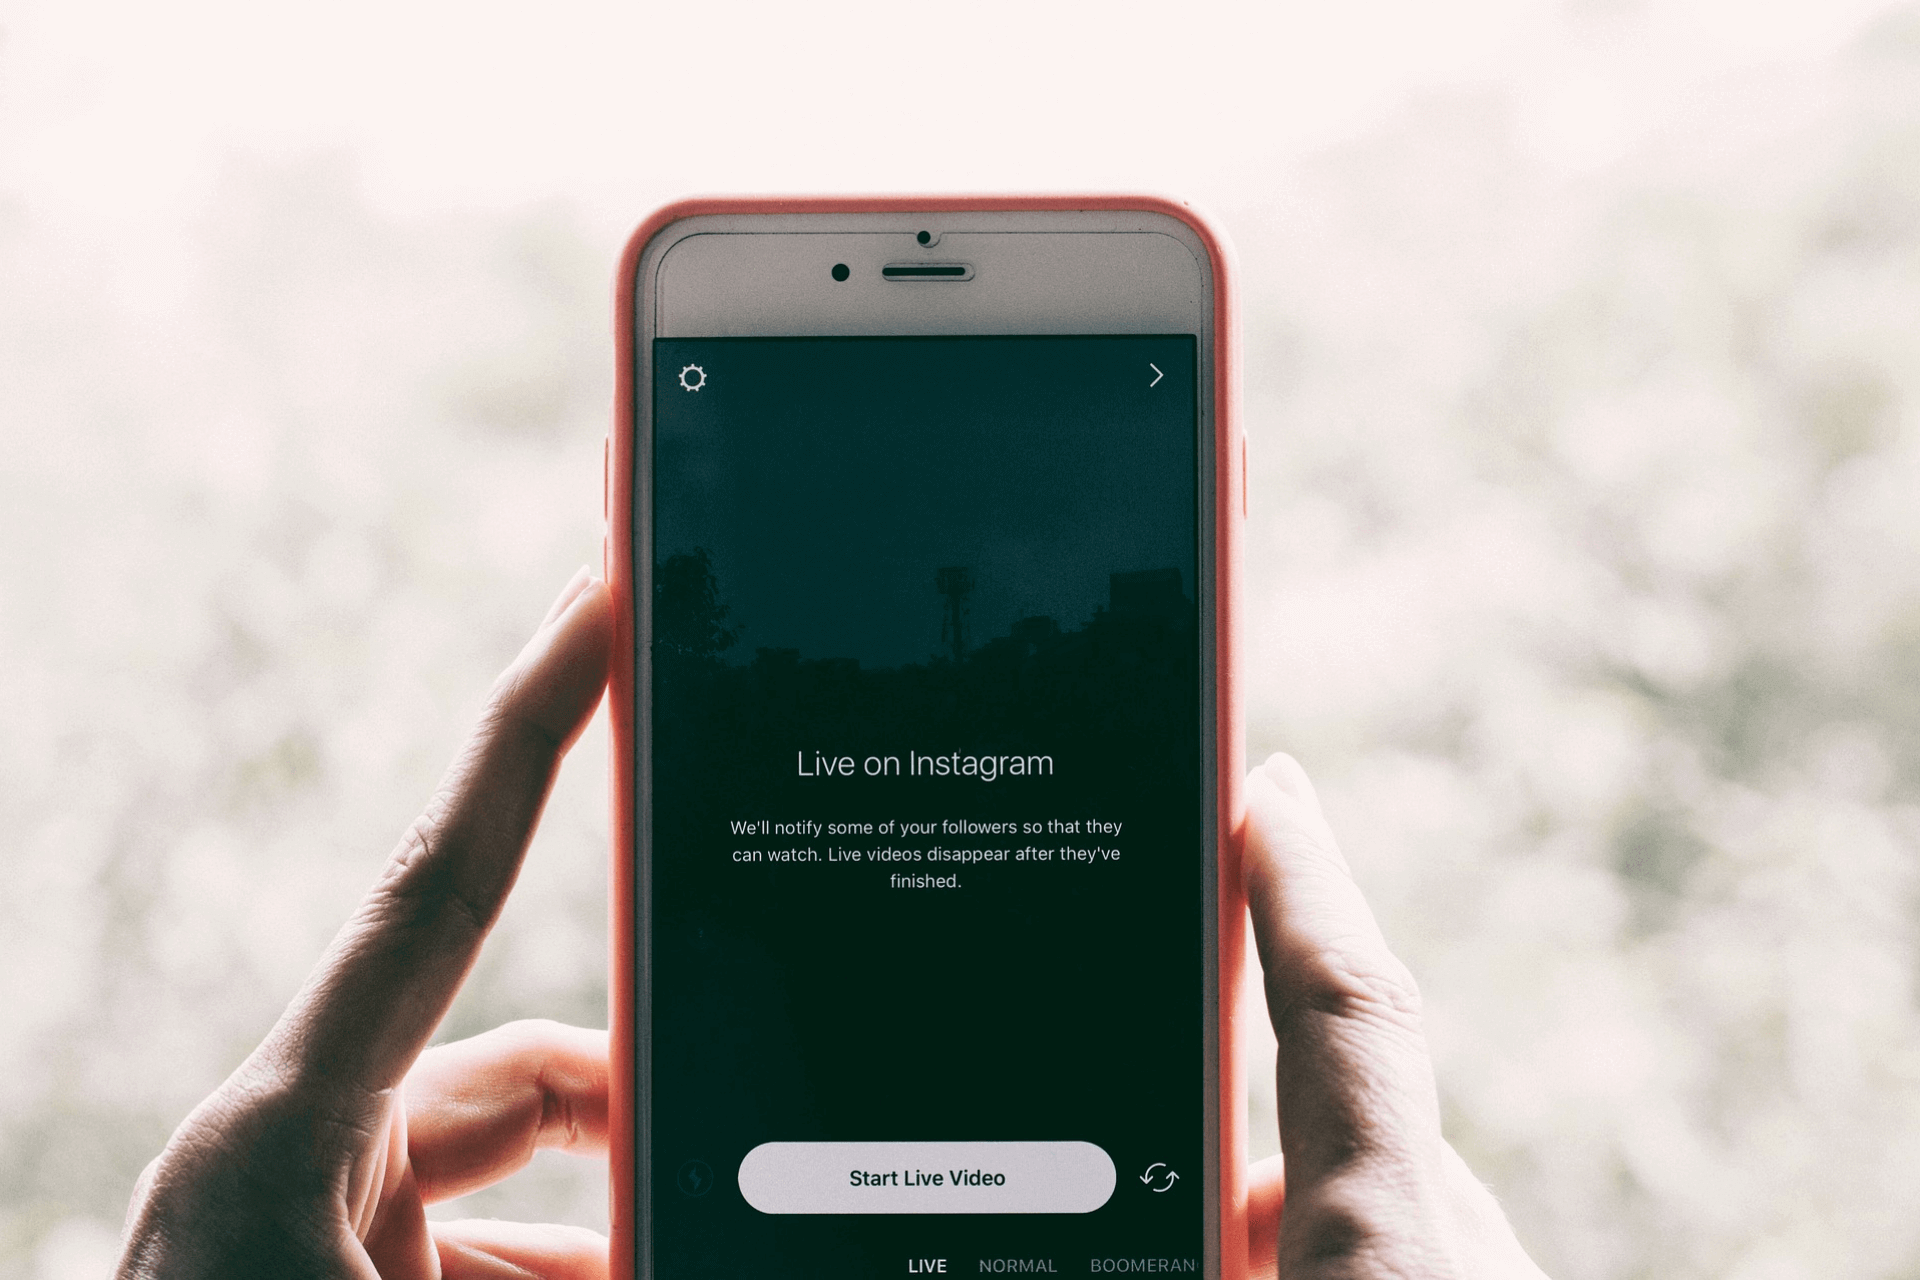 This image shows the Instagram Live video feature on a smartphone to support the article about the importance of Instagram marketing for businesses and non-profits